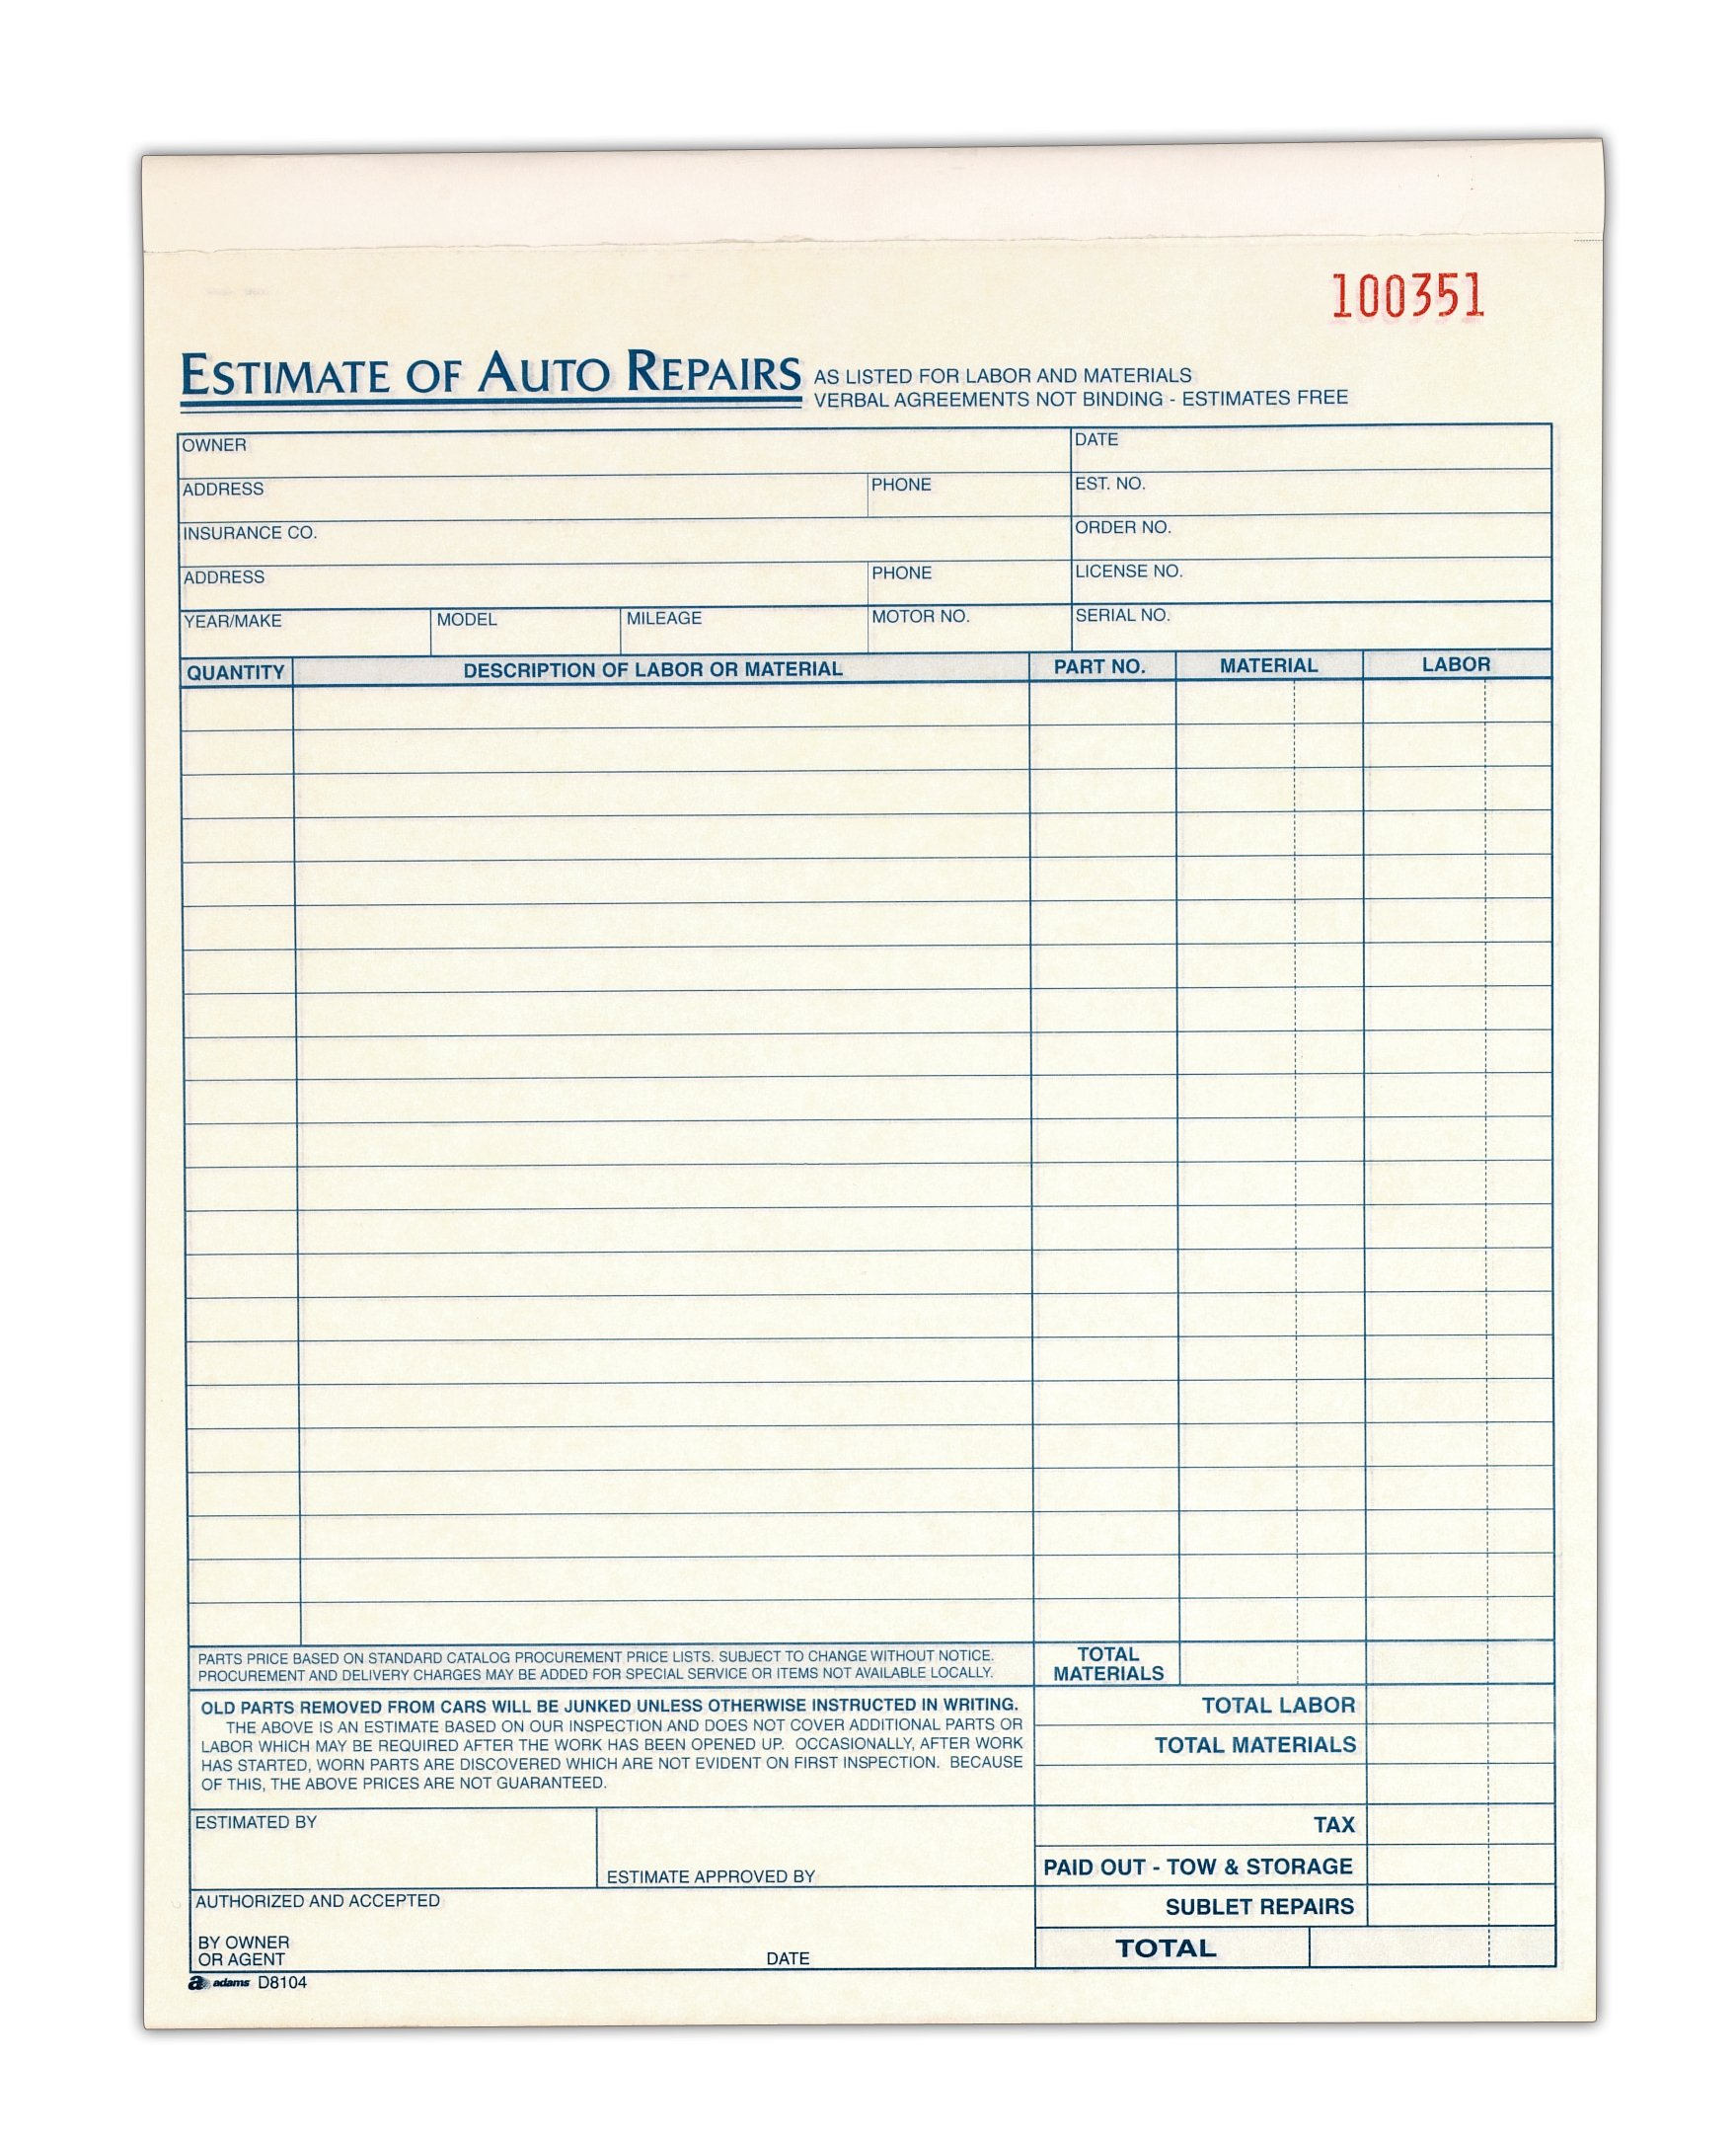 Auto Repair Estimate Book, 2-Part, Carbonless, 8.38 x 10.69 Inches, White/Canary, 50 Sets per Book (D8104)